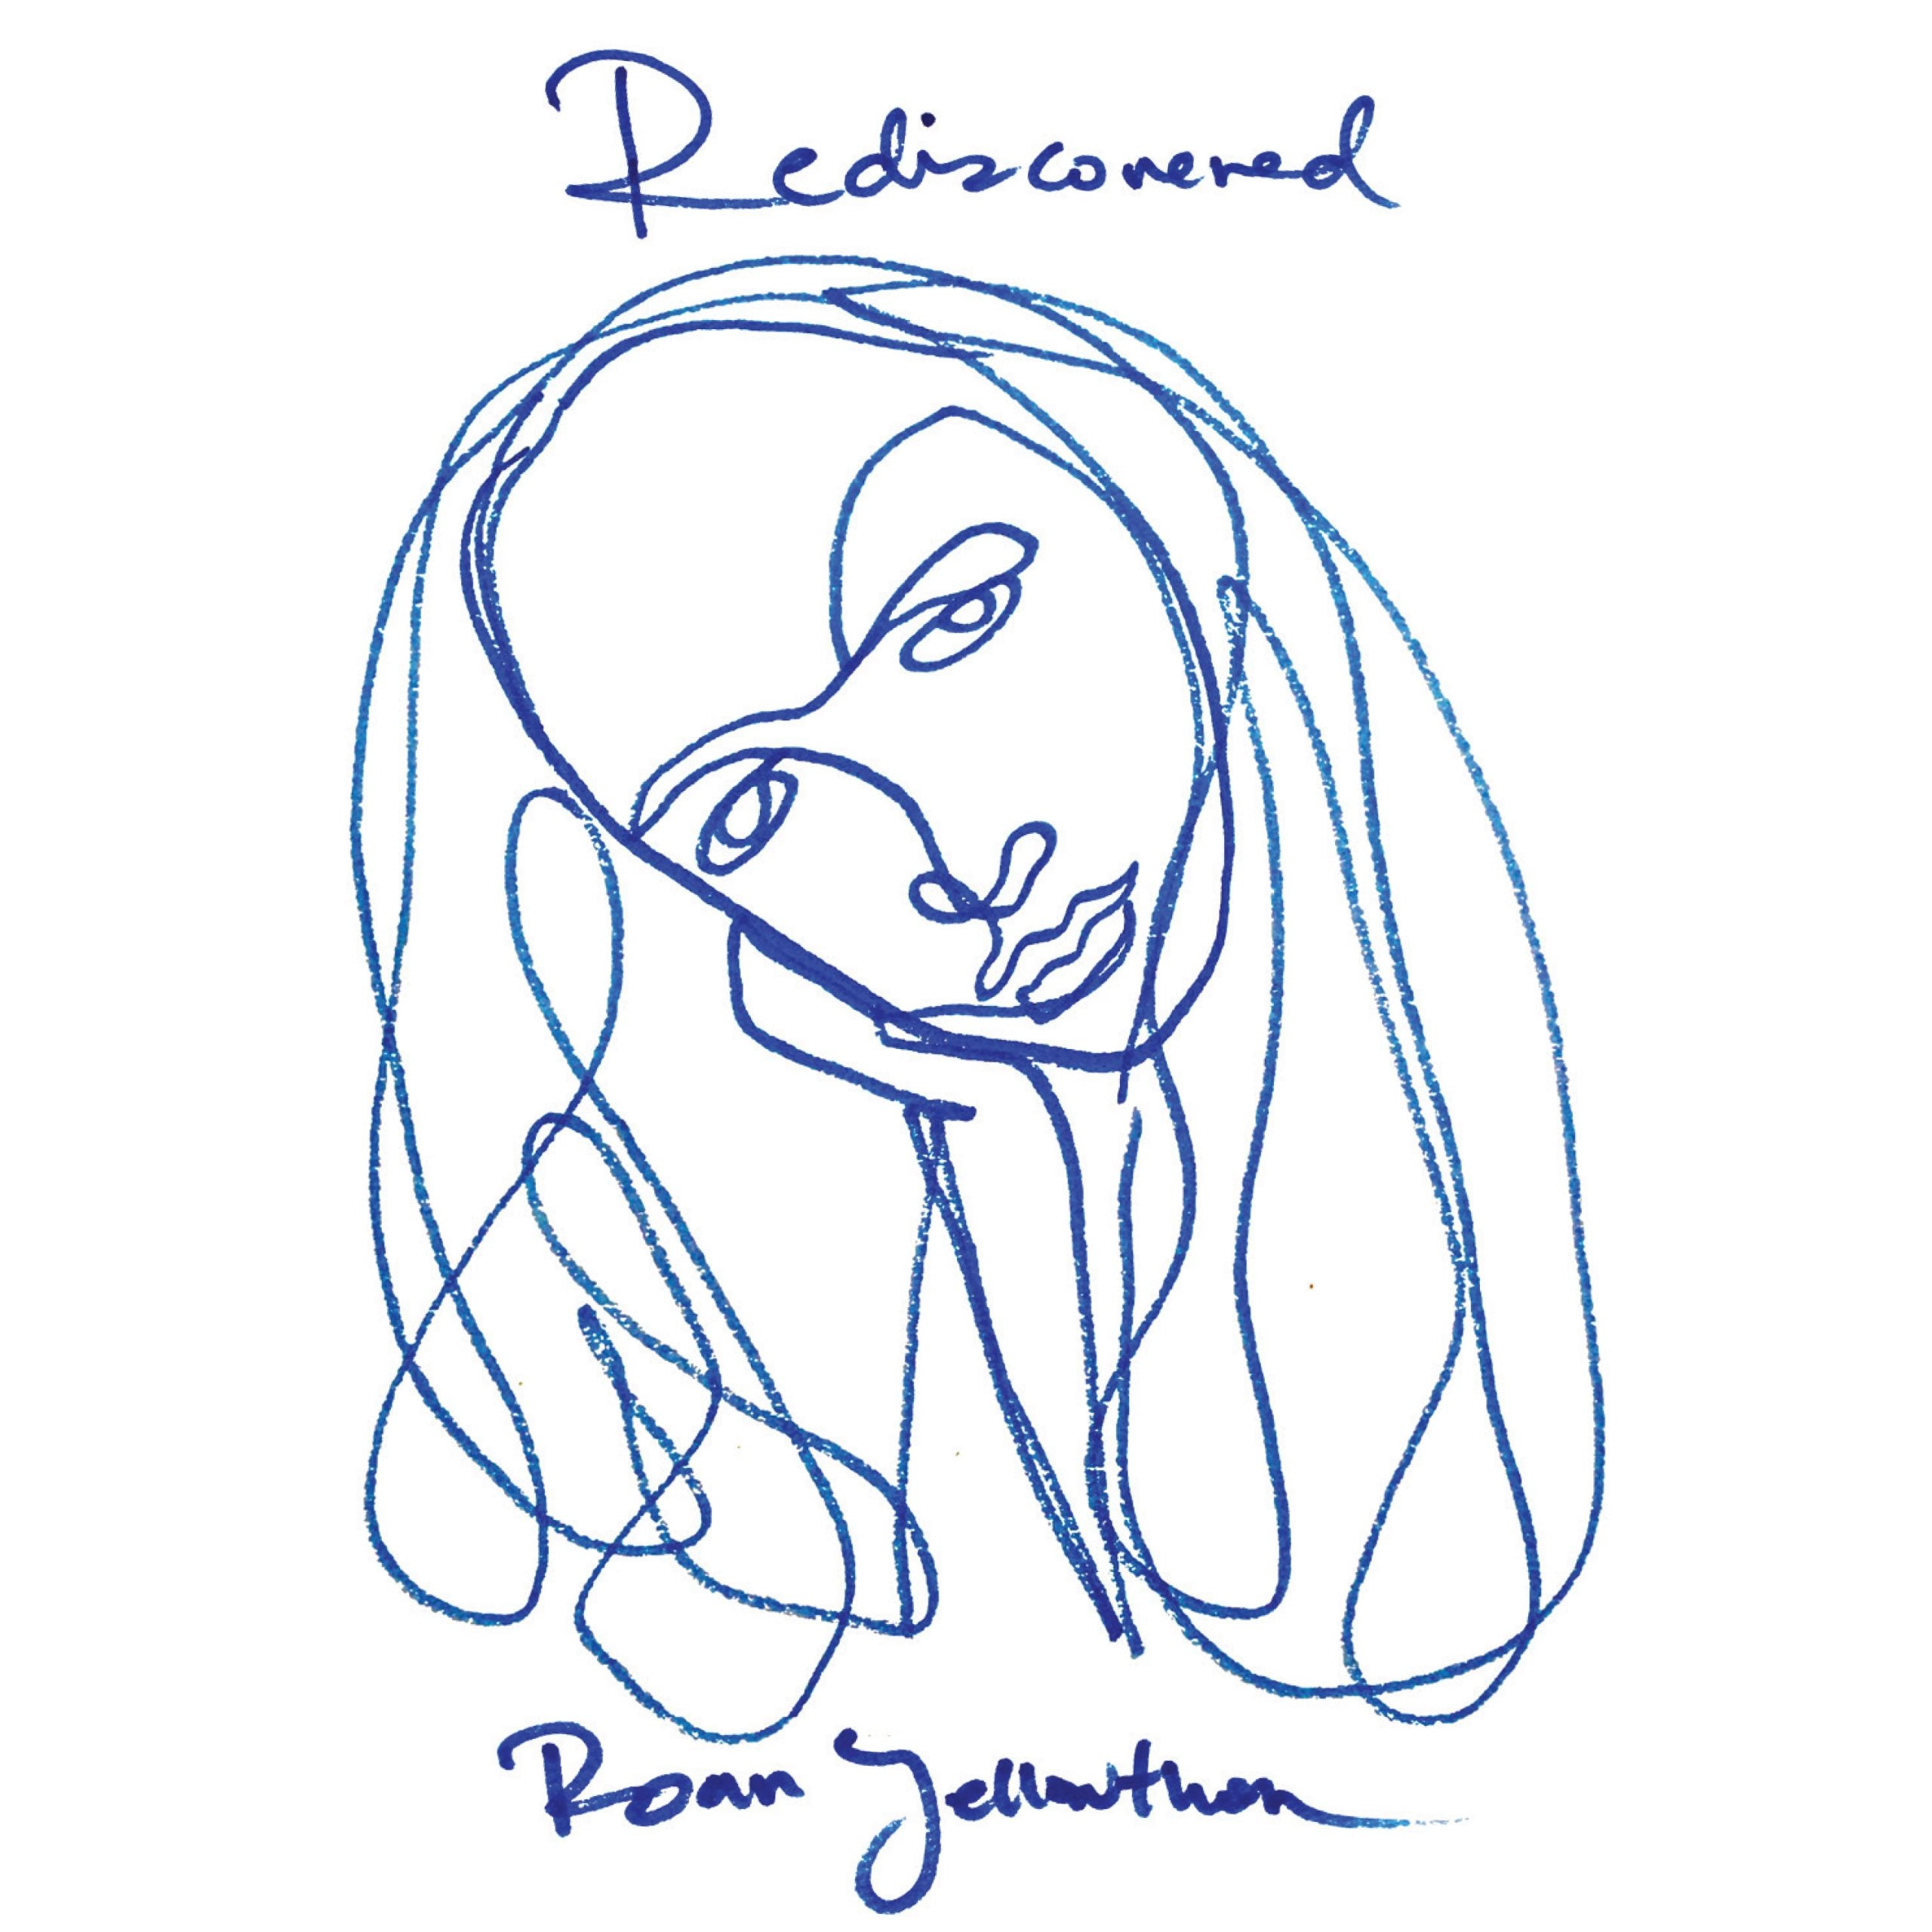 Roan Yellowthorn - Rediscovered